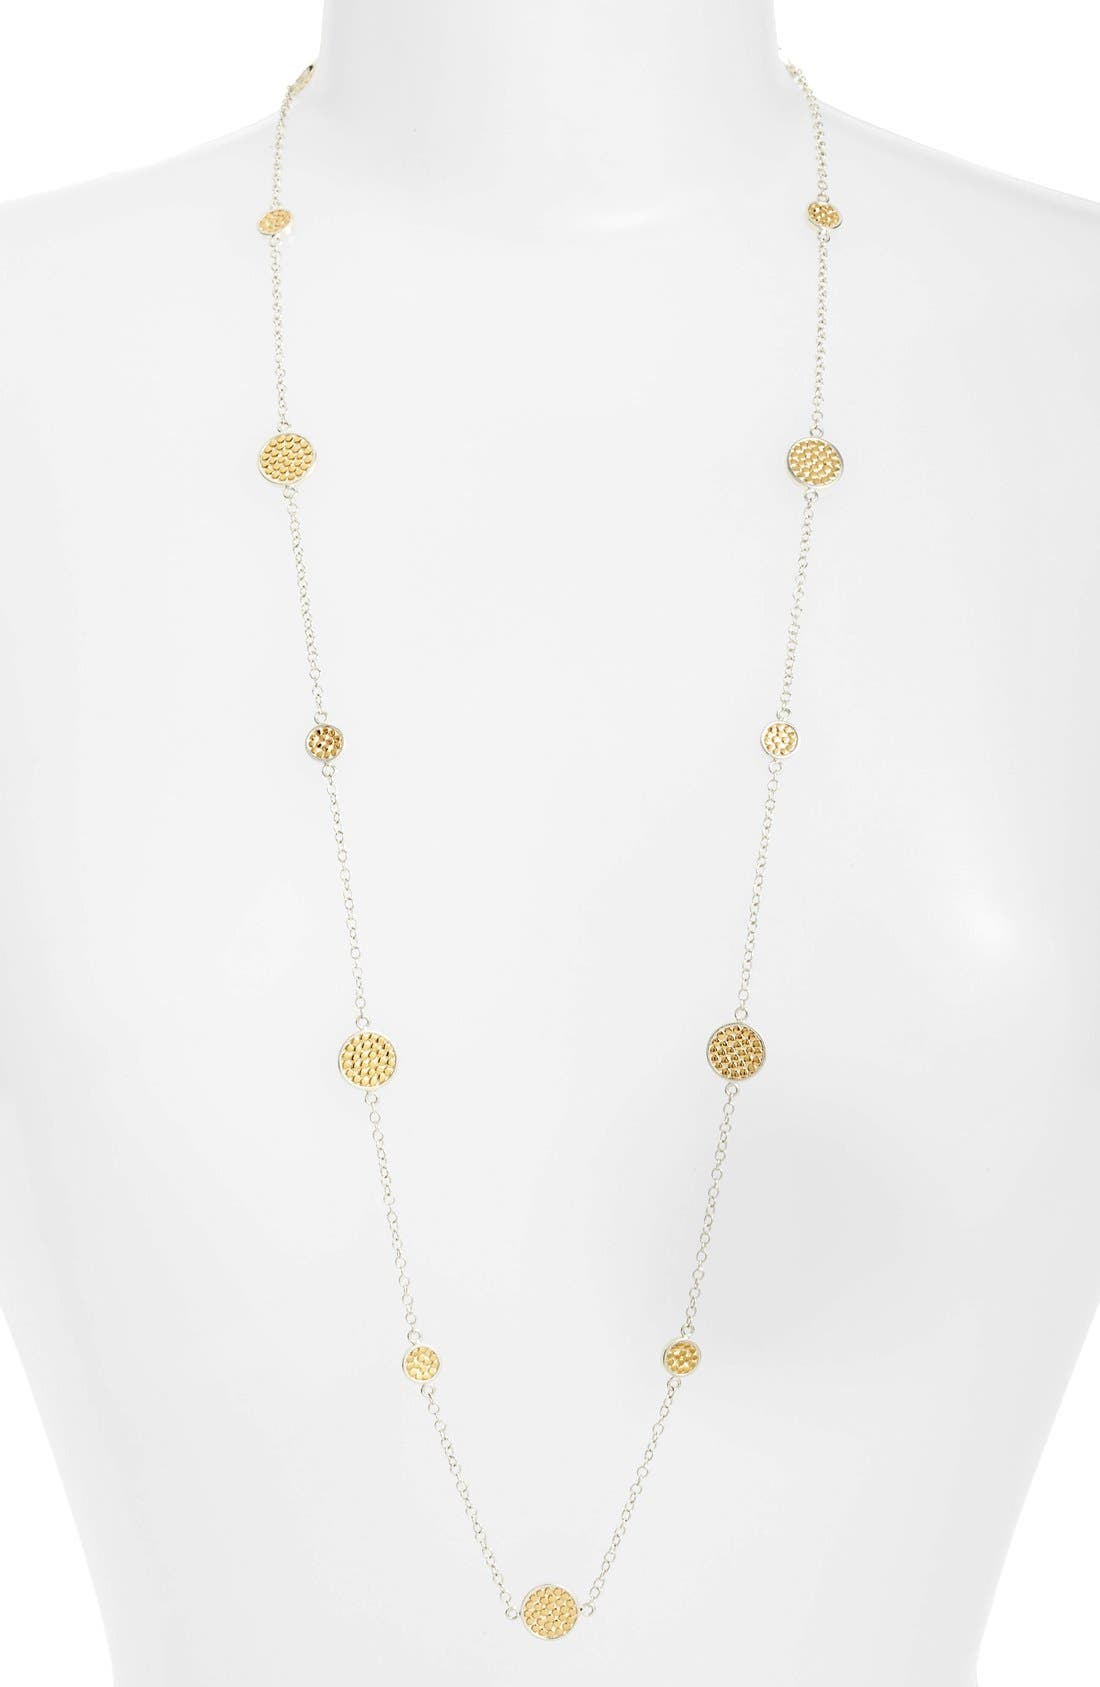 Alternate Image 1 Selected - Anna Beck 'Gili' Long Station Necklace (Nordstrom Exclusive)